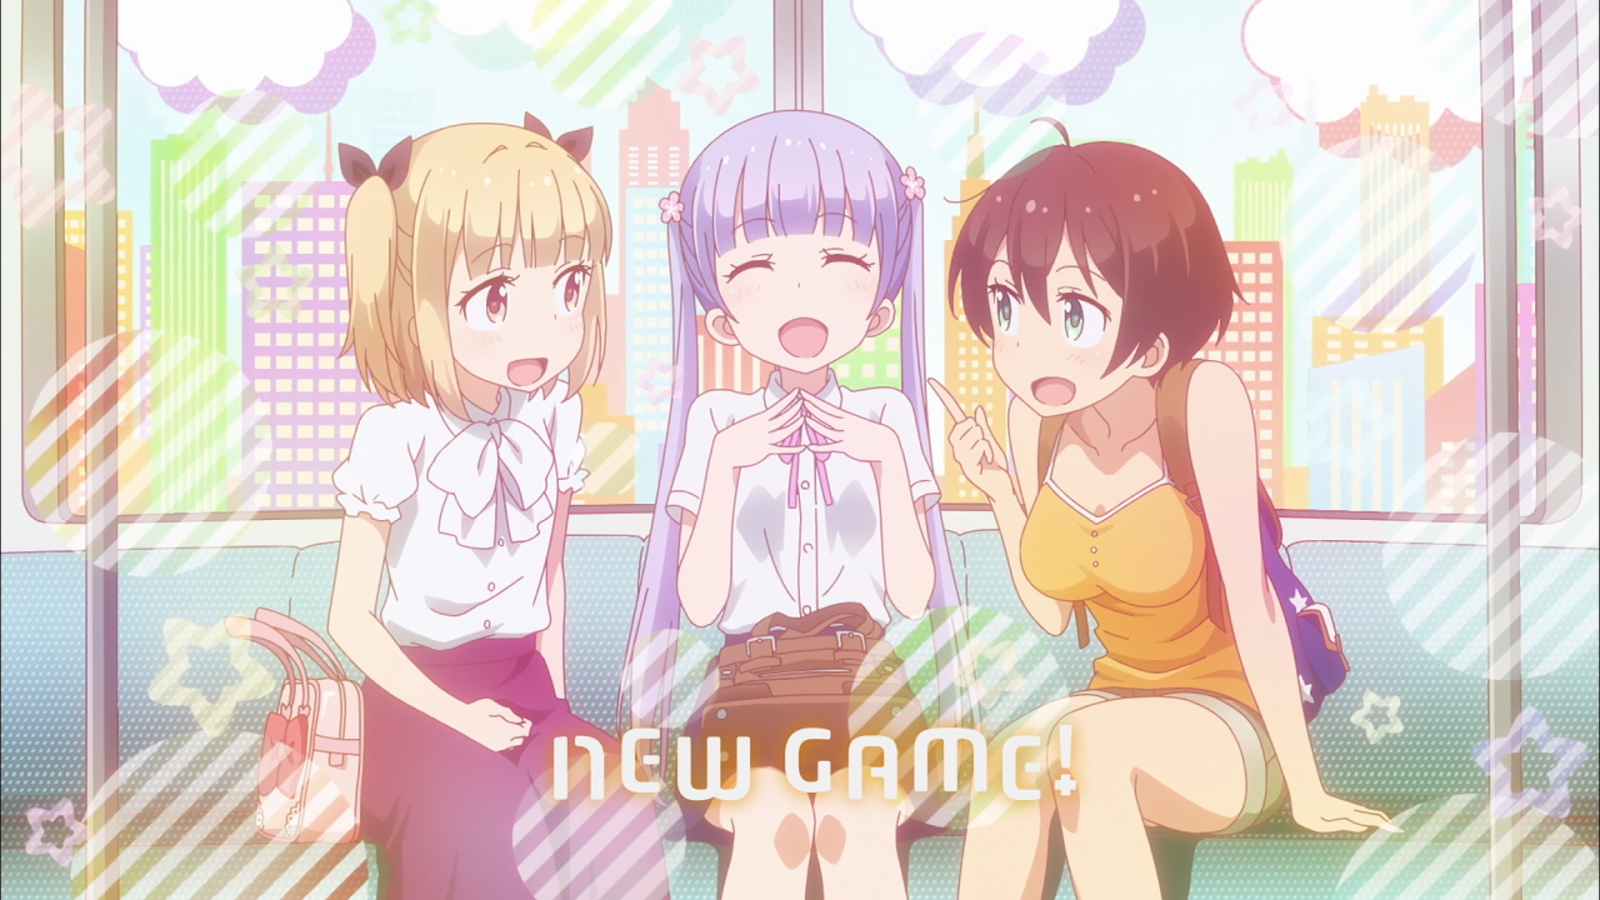 New Game! Eyecatch